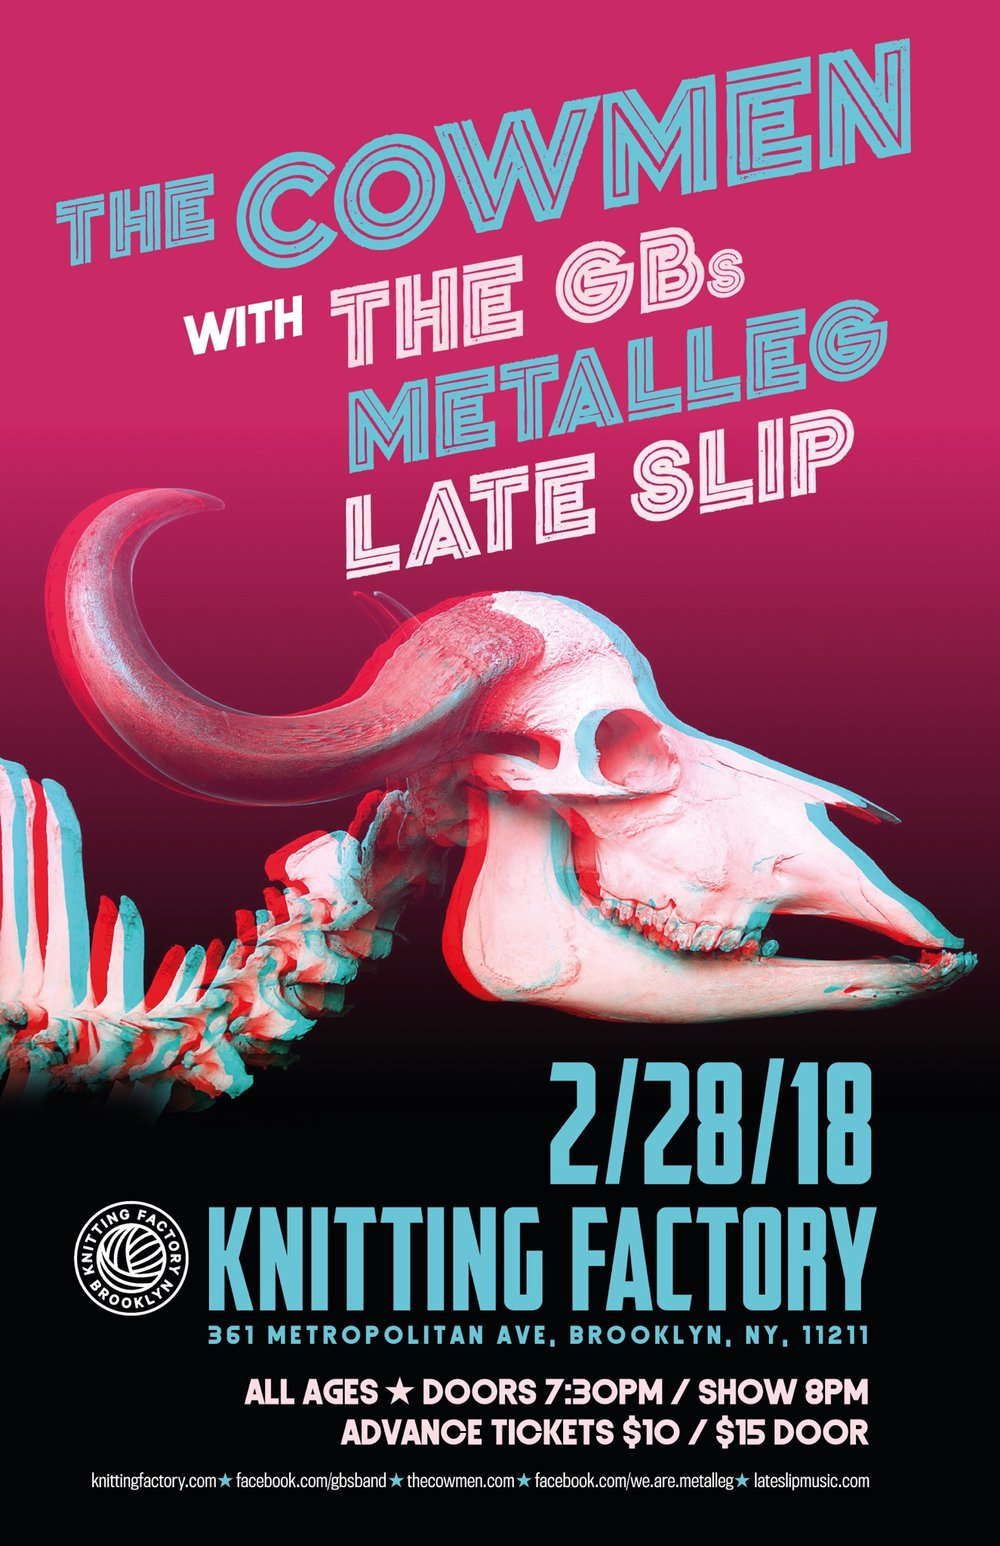 Knitting Factory Poster V3.jpg.jpeg